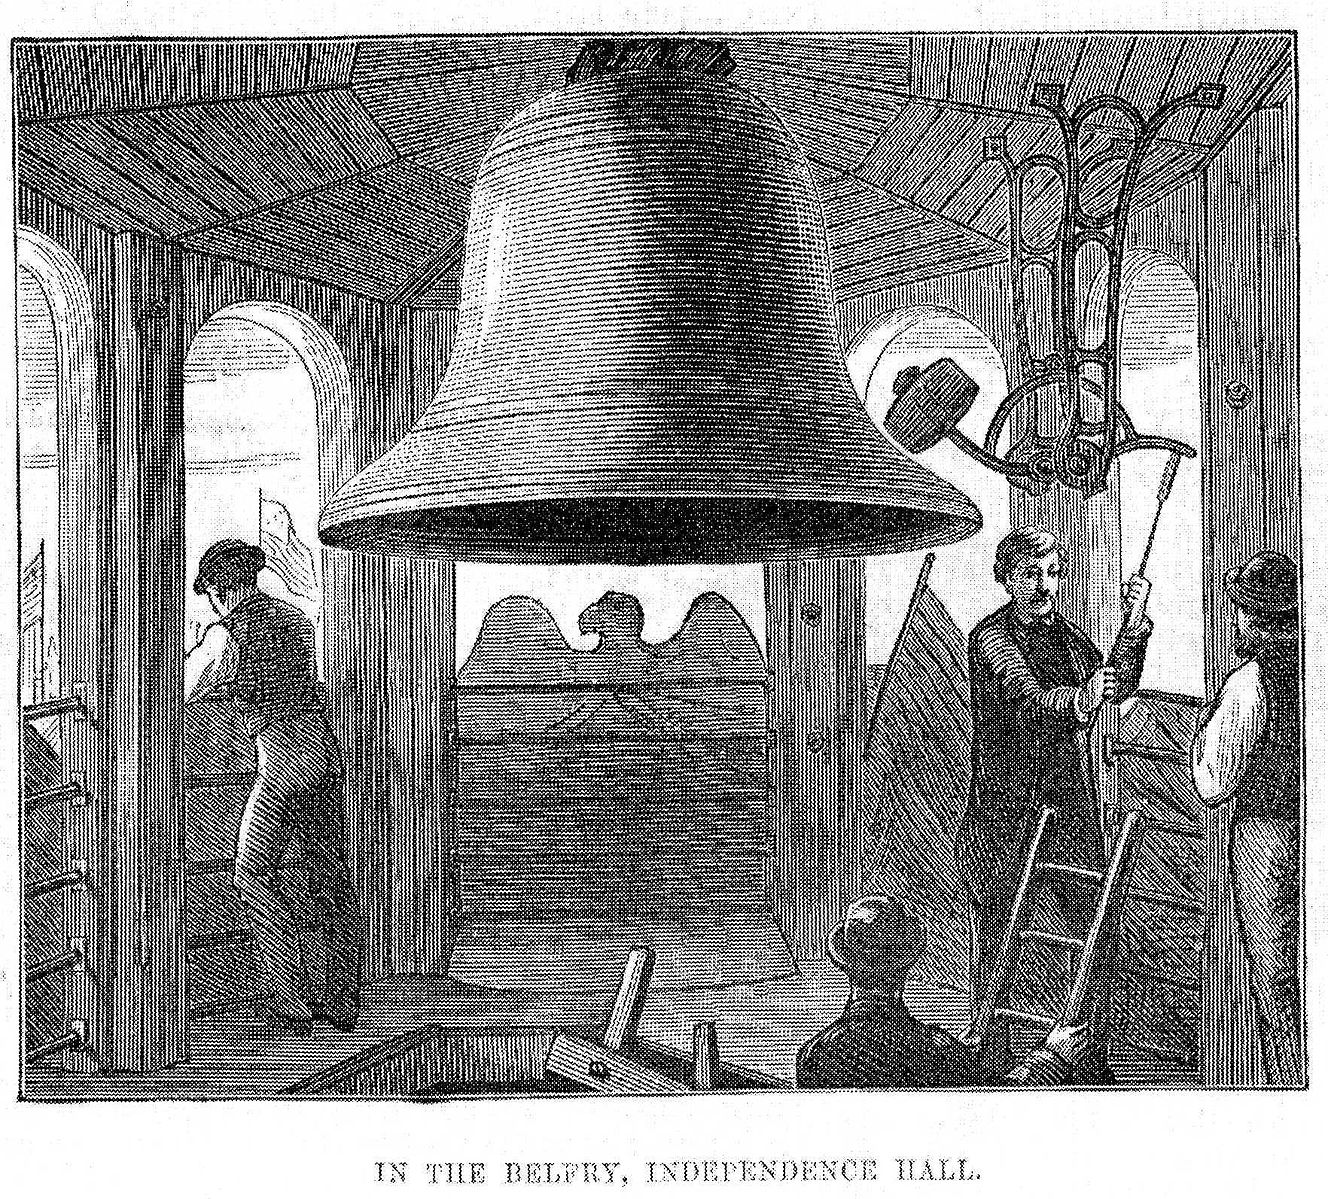 The Centennial Bell which replaced the Liberty Bell after it cracked.June 17, 1876.The Illustrated London News Photo:  PD-1923 public domain